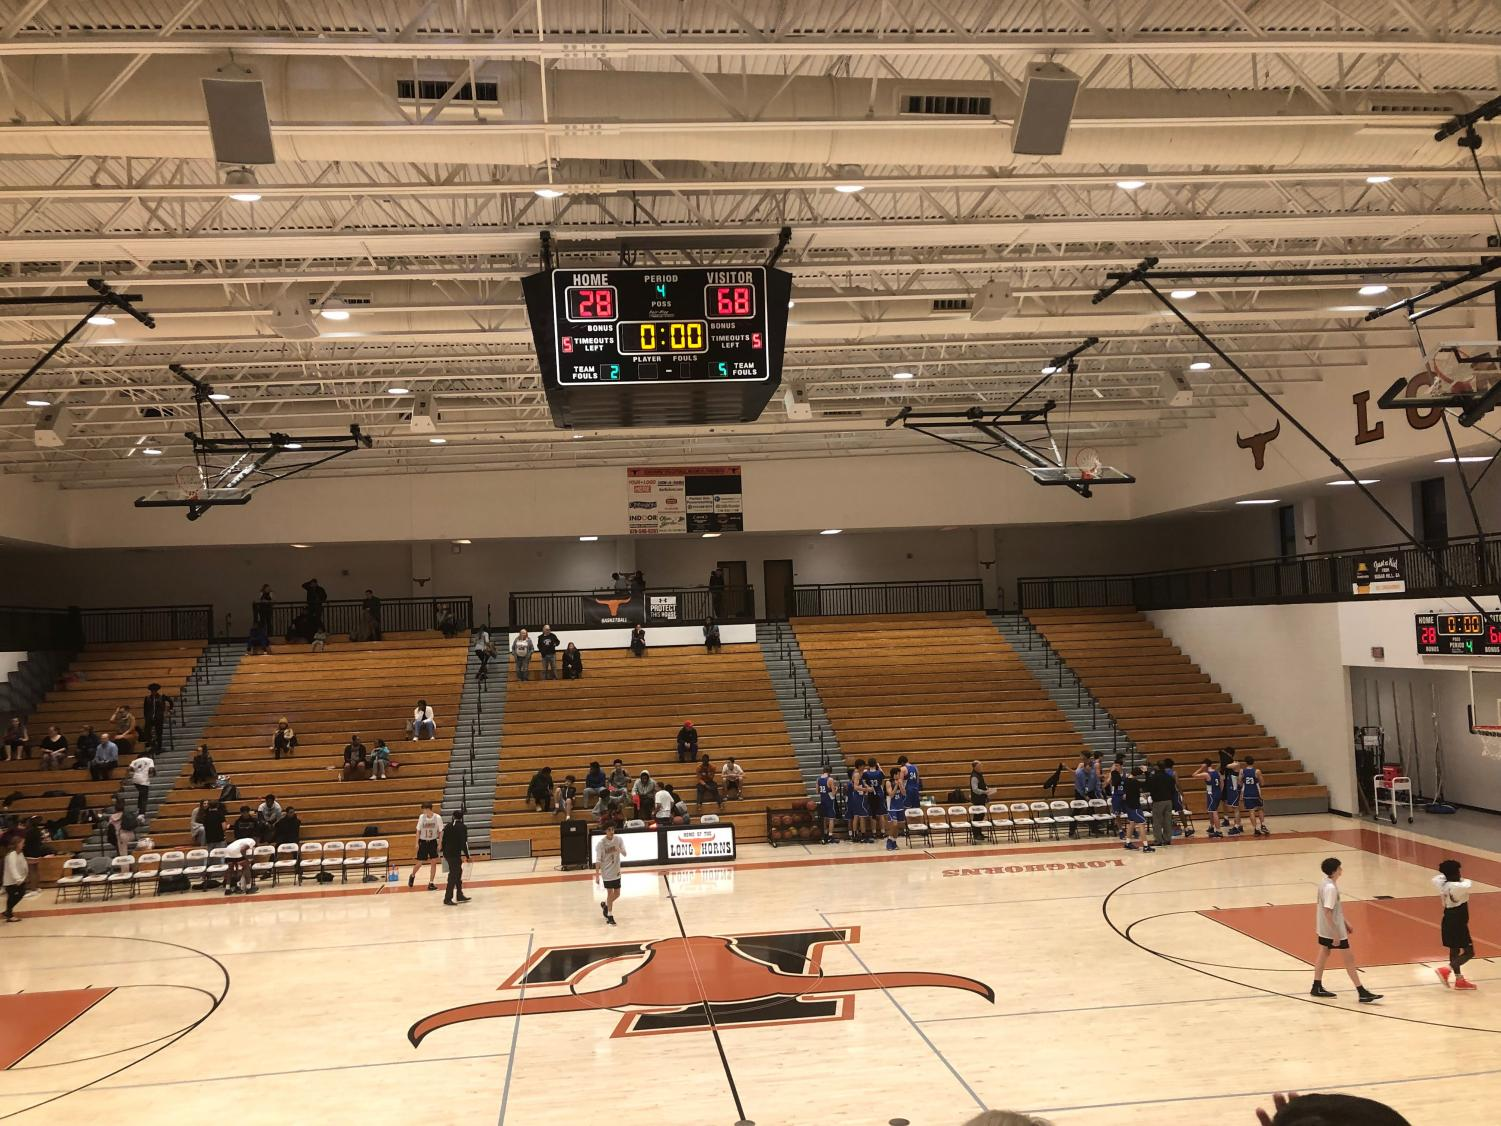 Sweet victory. South Forsyth basketball travelled to Lanier during their season. The JV boys were consistent in their game, and ended up defeating the Boy's JV Lanier team.